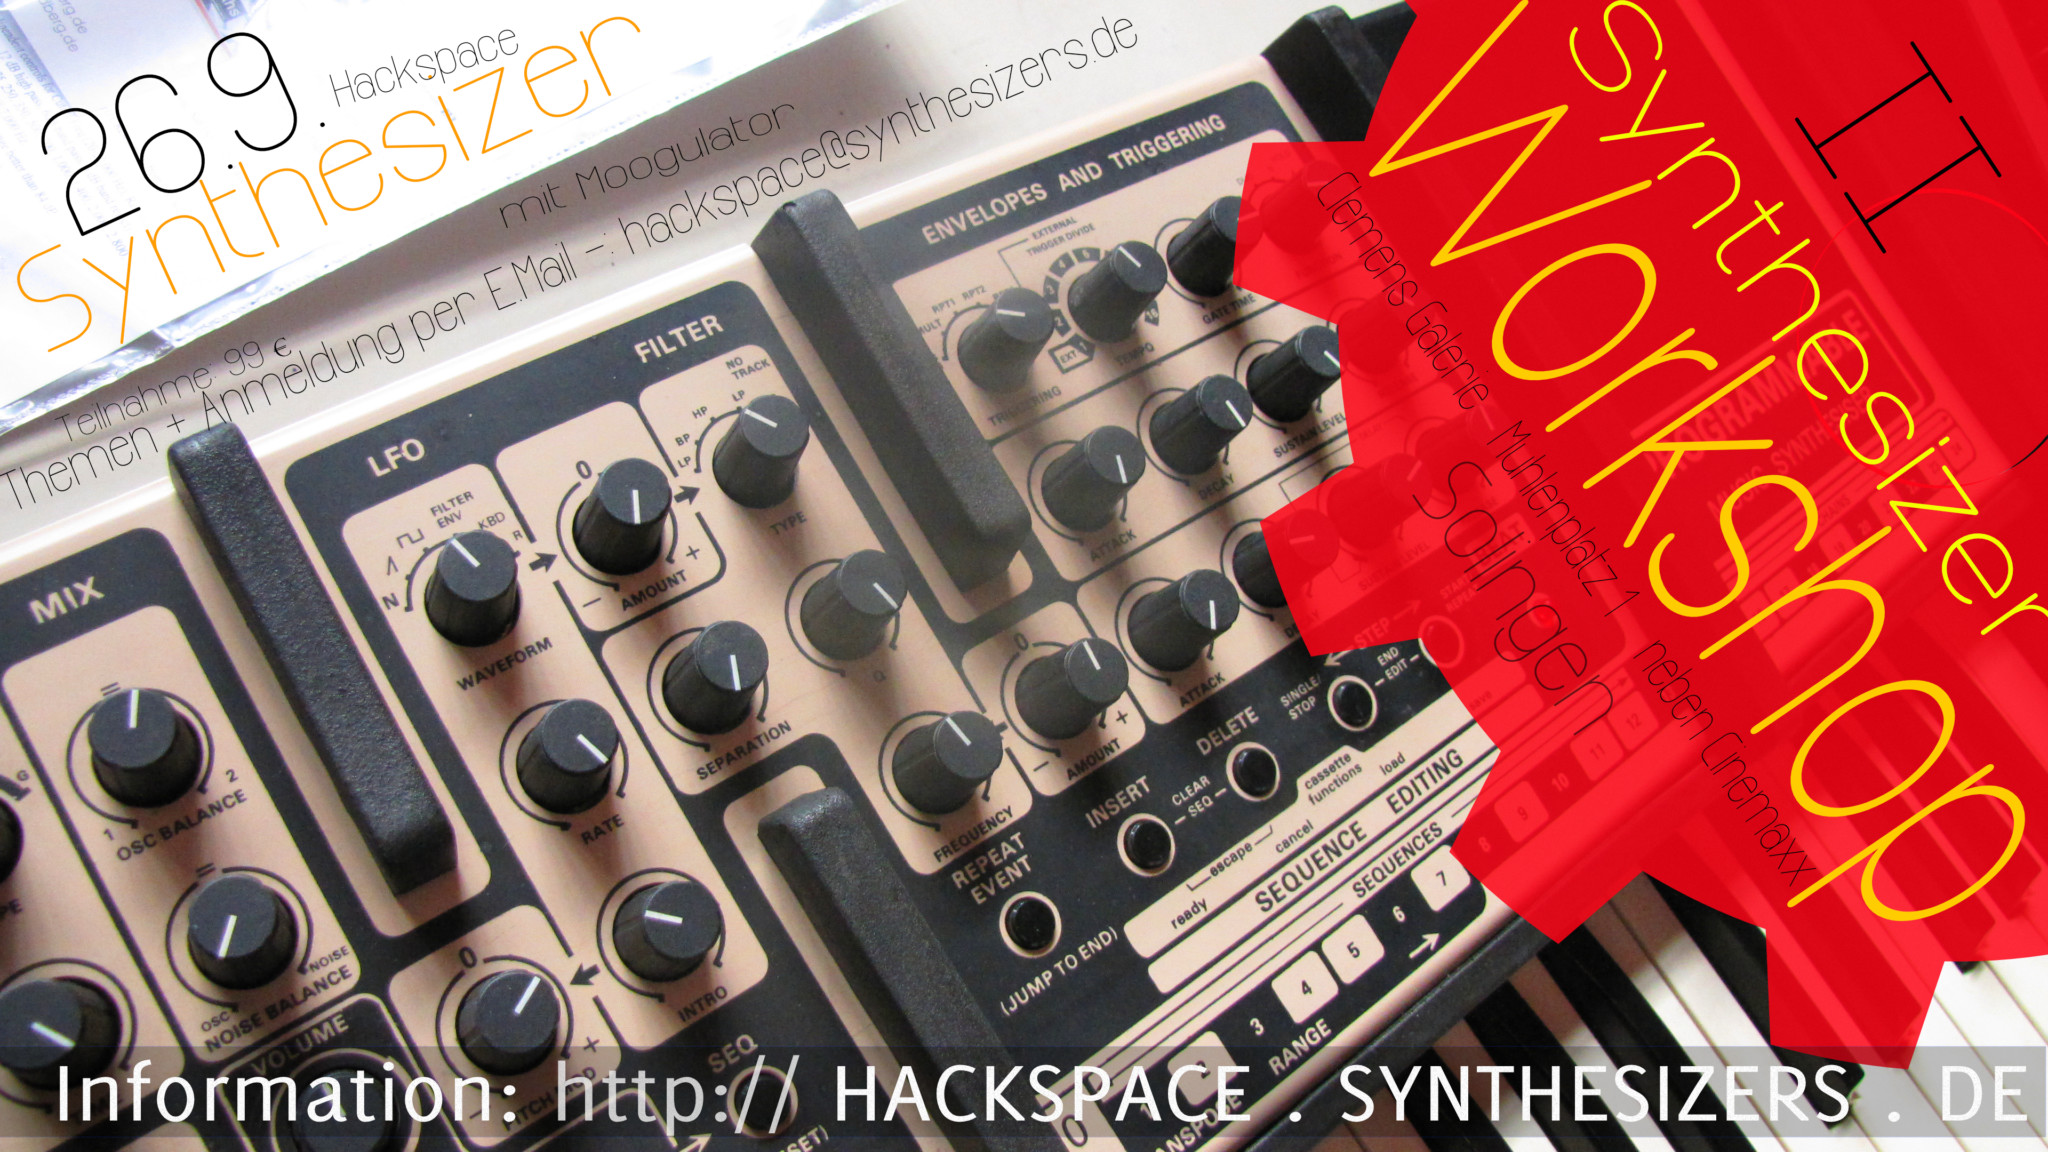 Synthesizer Workshop 26.9. Solingen - Hackspace II